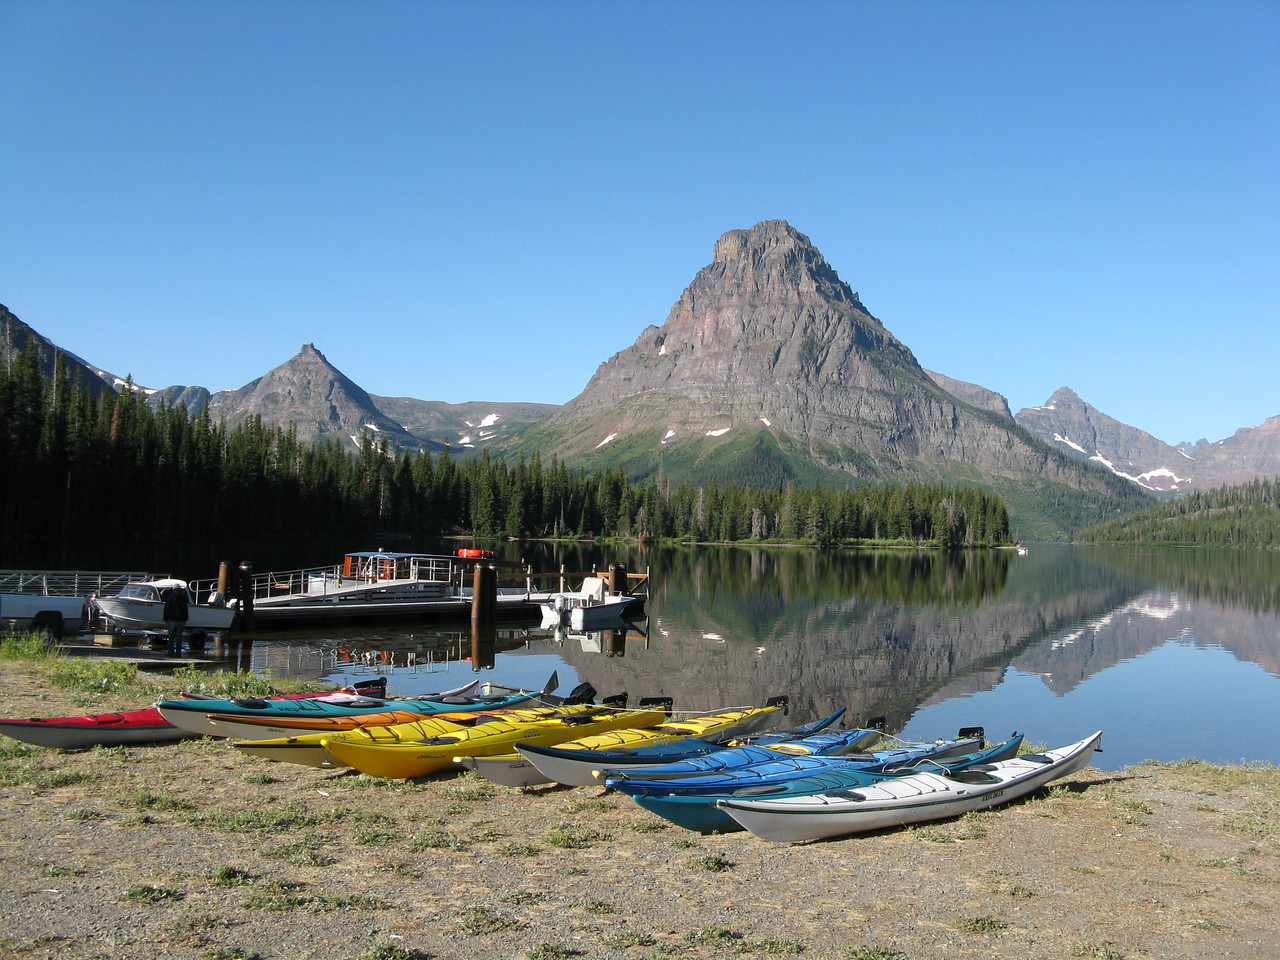 It was a beautiful morning as we headed towards the boat dock on Two Medicine Lake.